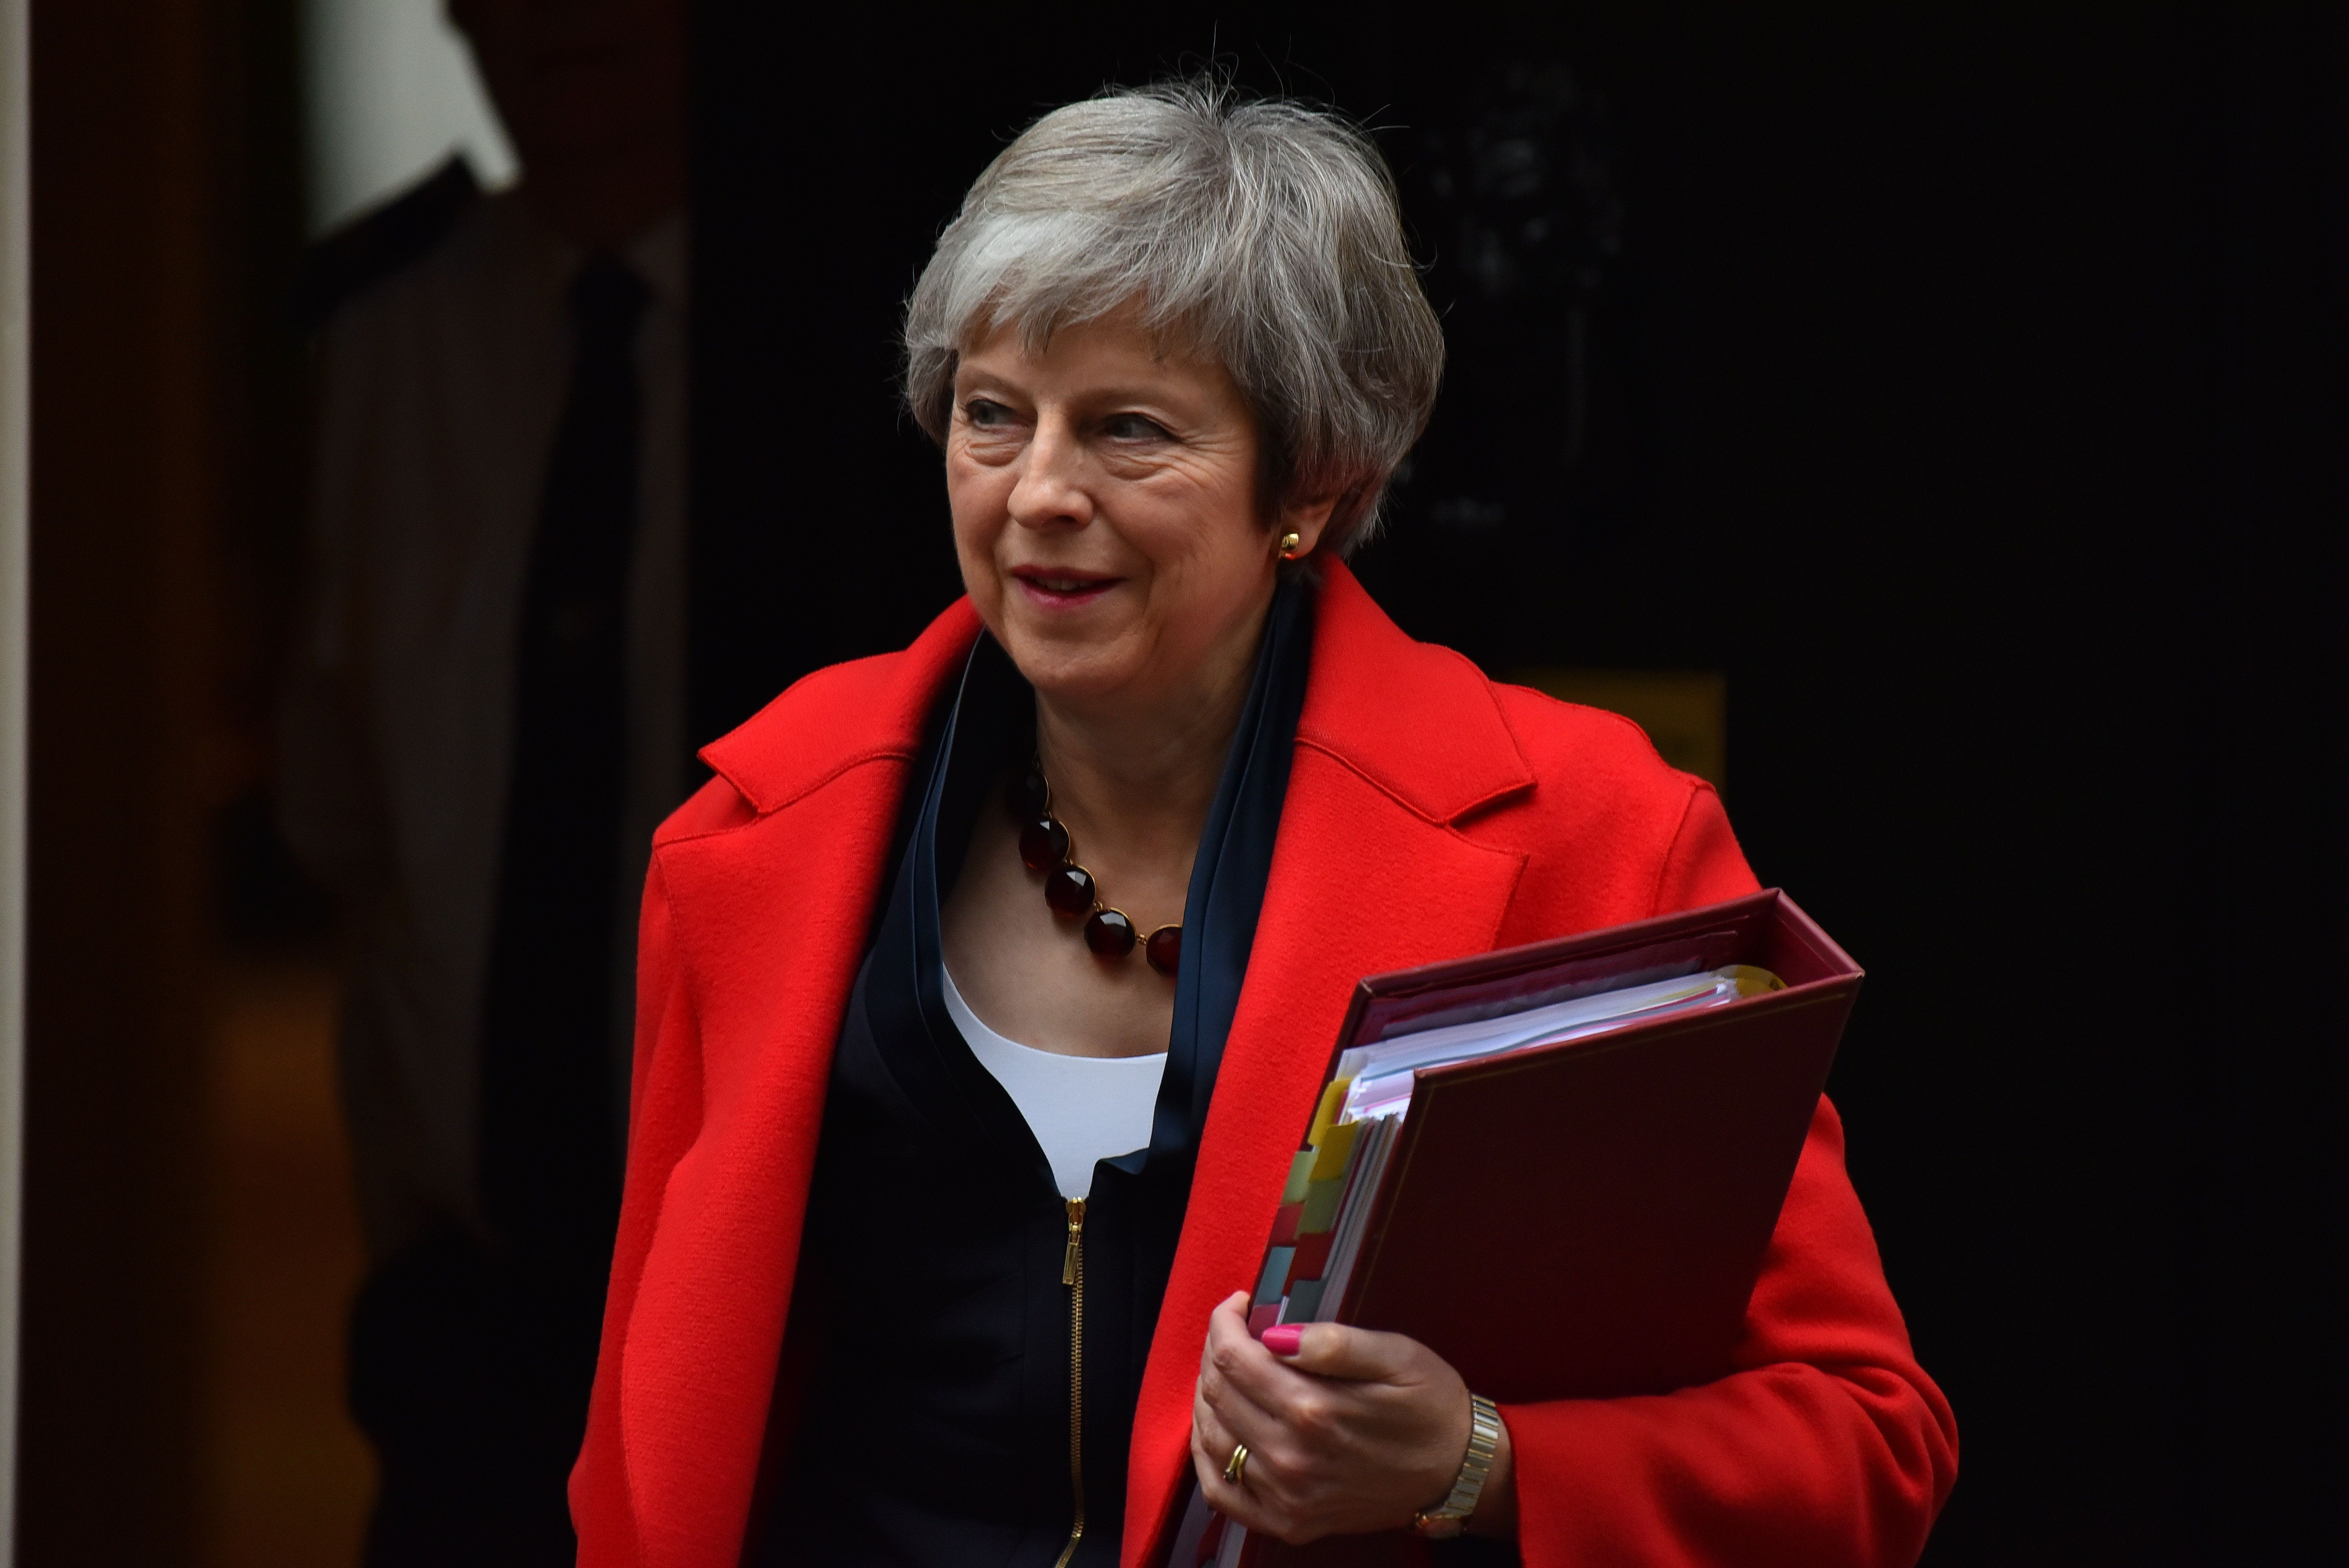 Theresa May Asks MPs To Vote In 'National Interest' As She Defends Her Brexit Deal As Best For